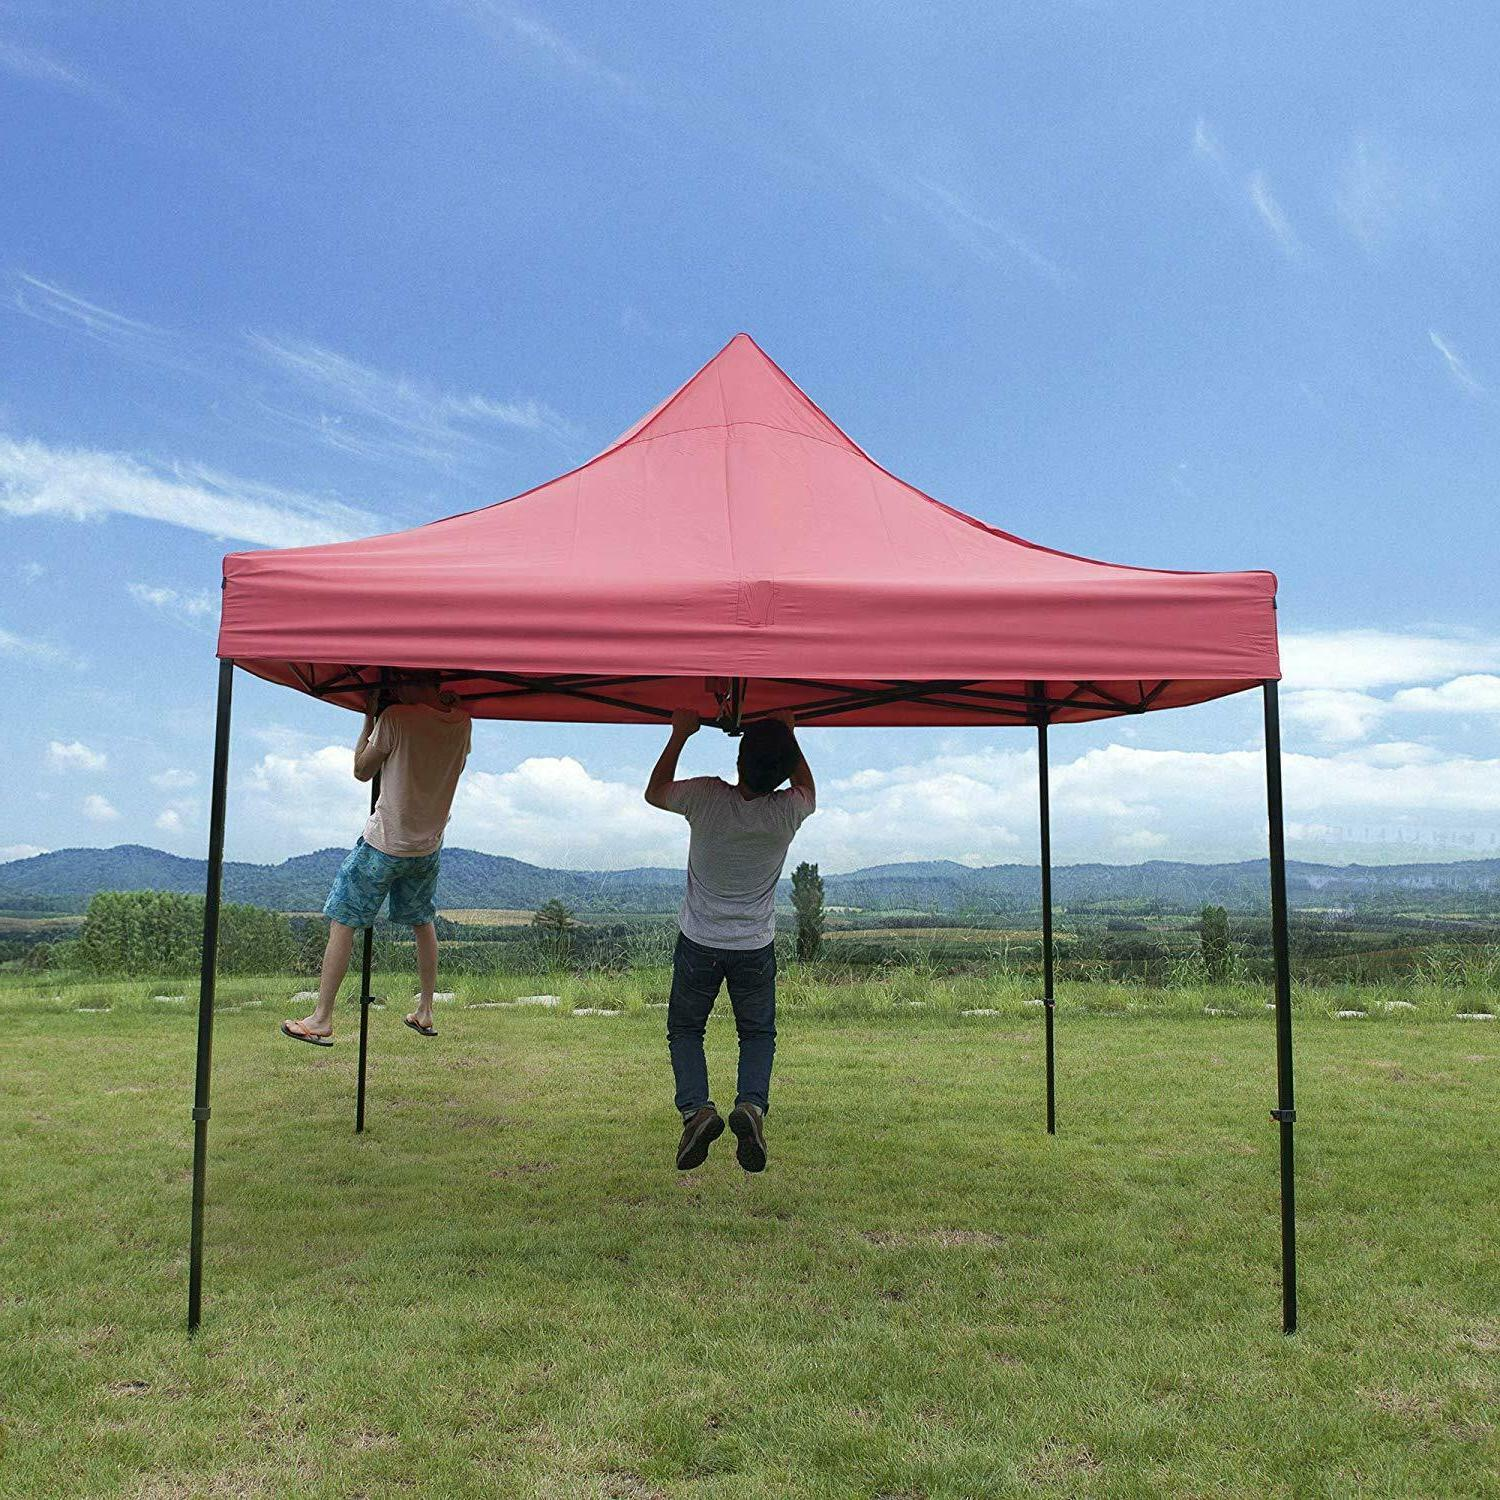 10x10 Canopy Canopy Party Tent W/ Bag